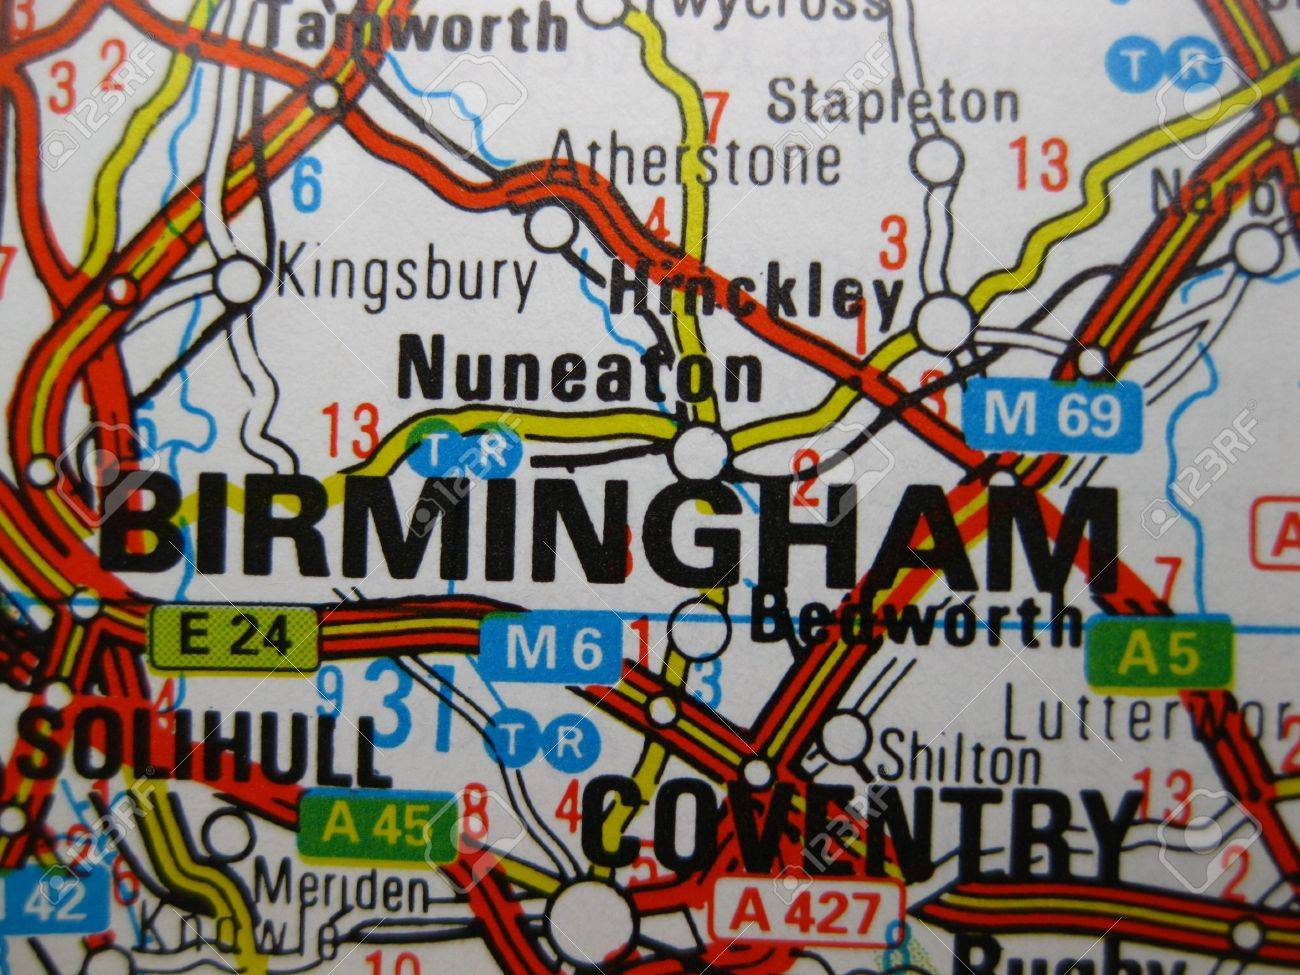 Map Of Birmingham England.Europe In Seven Days Map Of Birmingham England